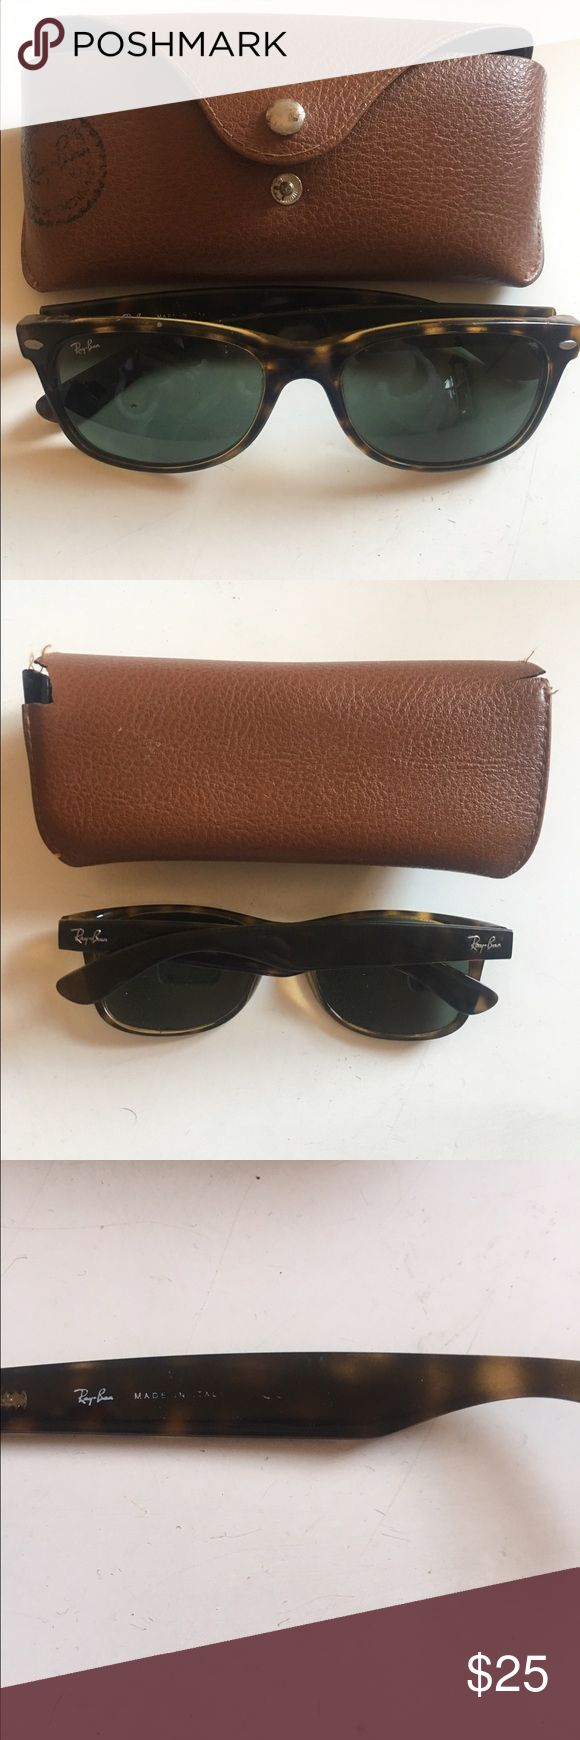 Authentic Ray Ban Wayfarer Sunnies! 😎 Classic Ray ban wayfarer sunglasses in tortoise print with brown gradient lenses. They do have wear (inside of arms/ printing are mostly worn), scratches on right lense (doesn't bother me much). Includes case. Retail $130 Ray-Ban Accessories Sunglasses